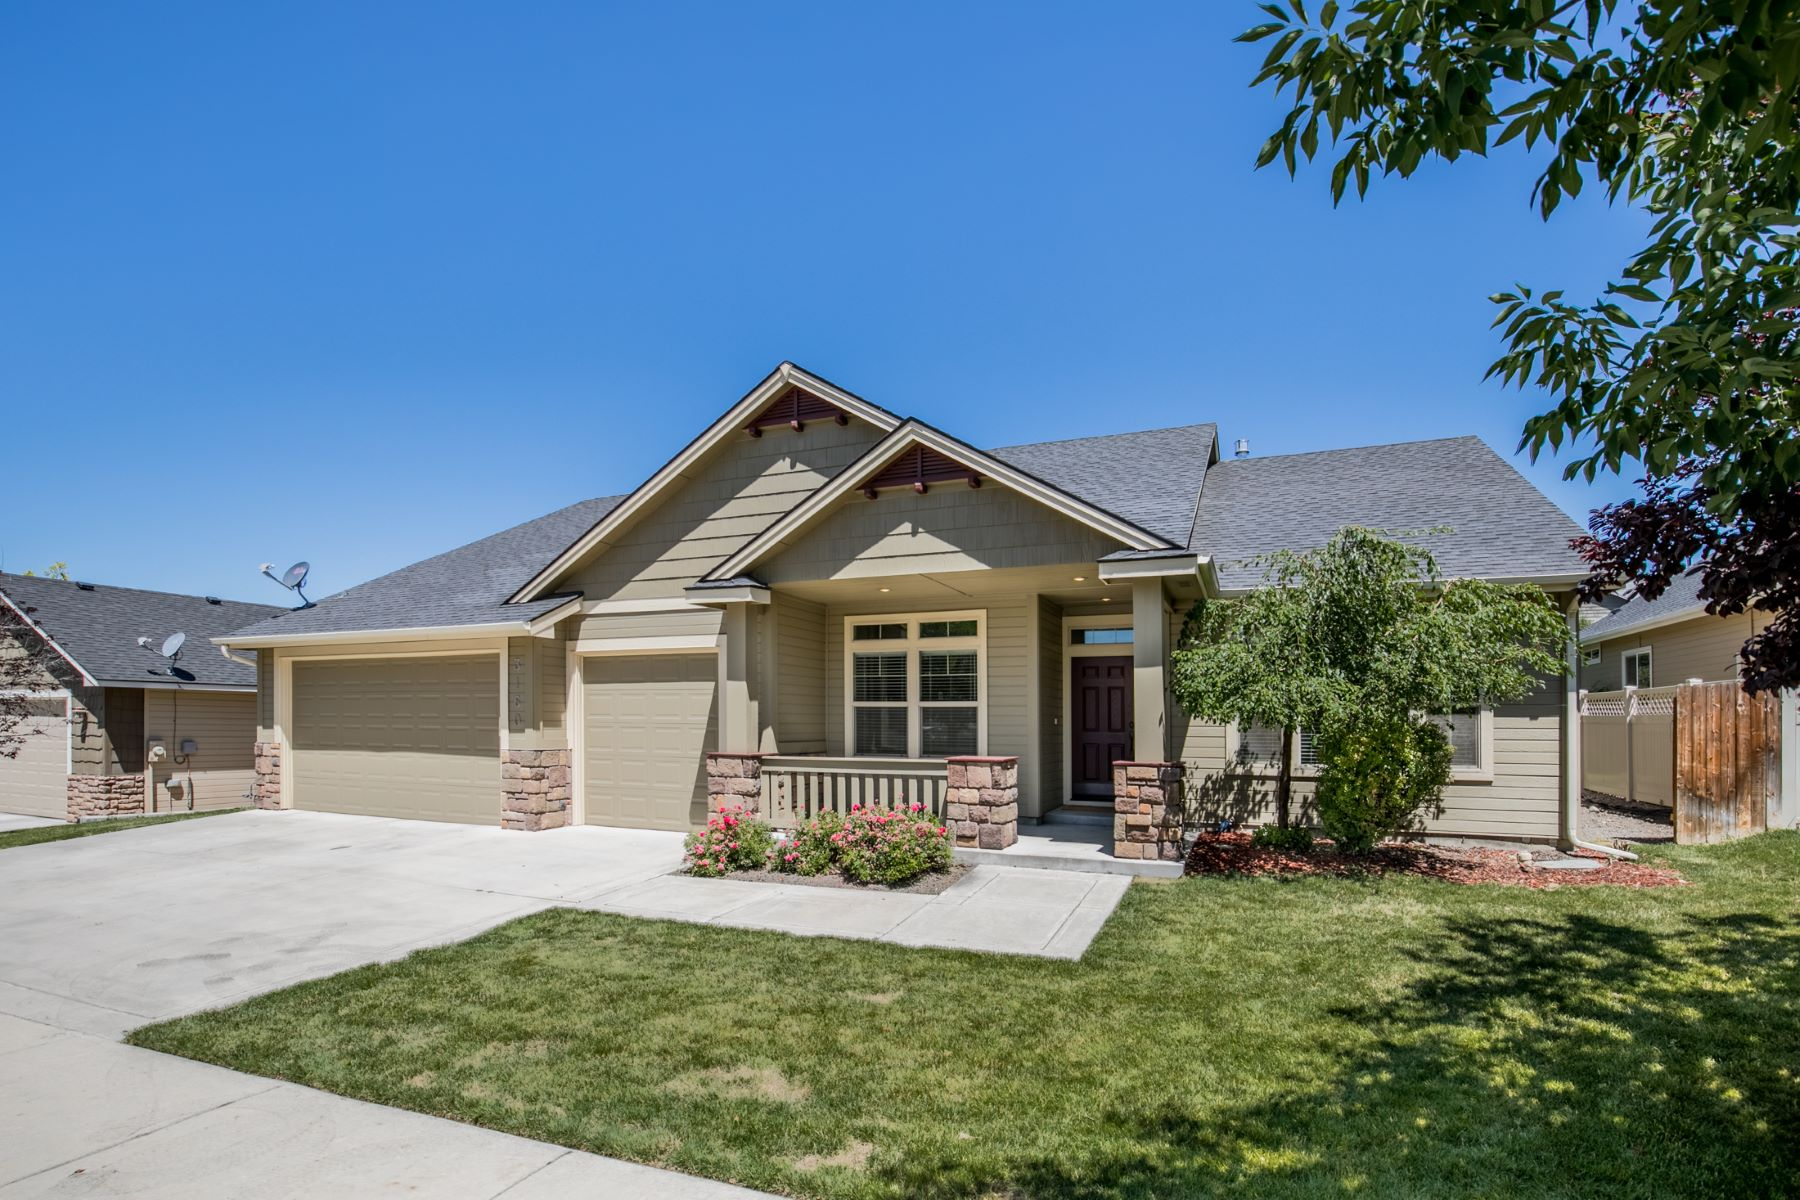 Single Family Homes for Active at 3160 Shadowview St, Eagle 3160 E Shadowview St Eagle, Idaho 83616 United States